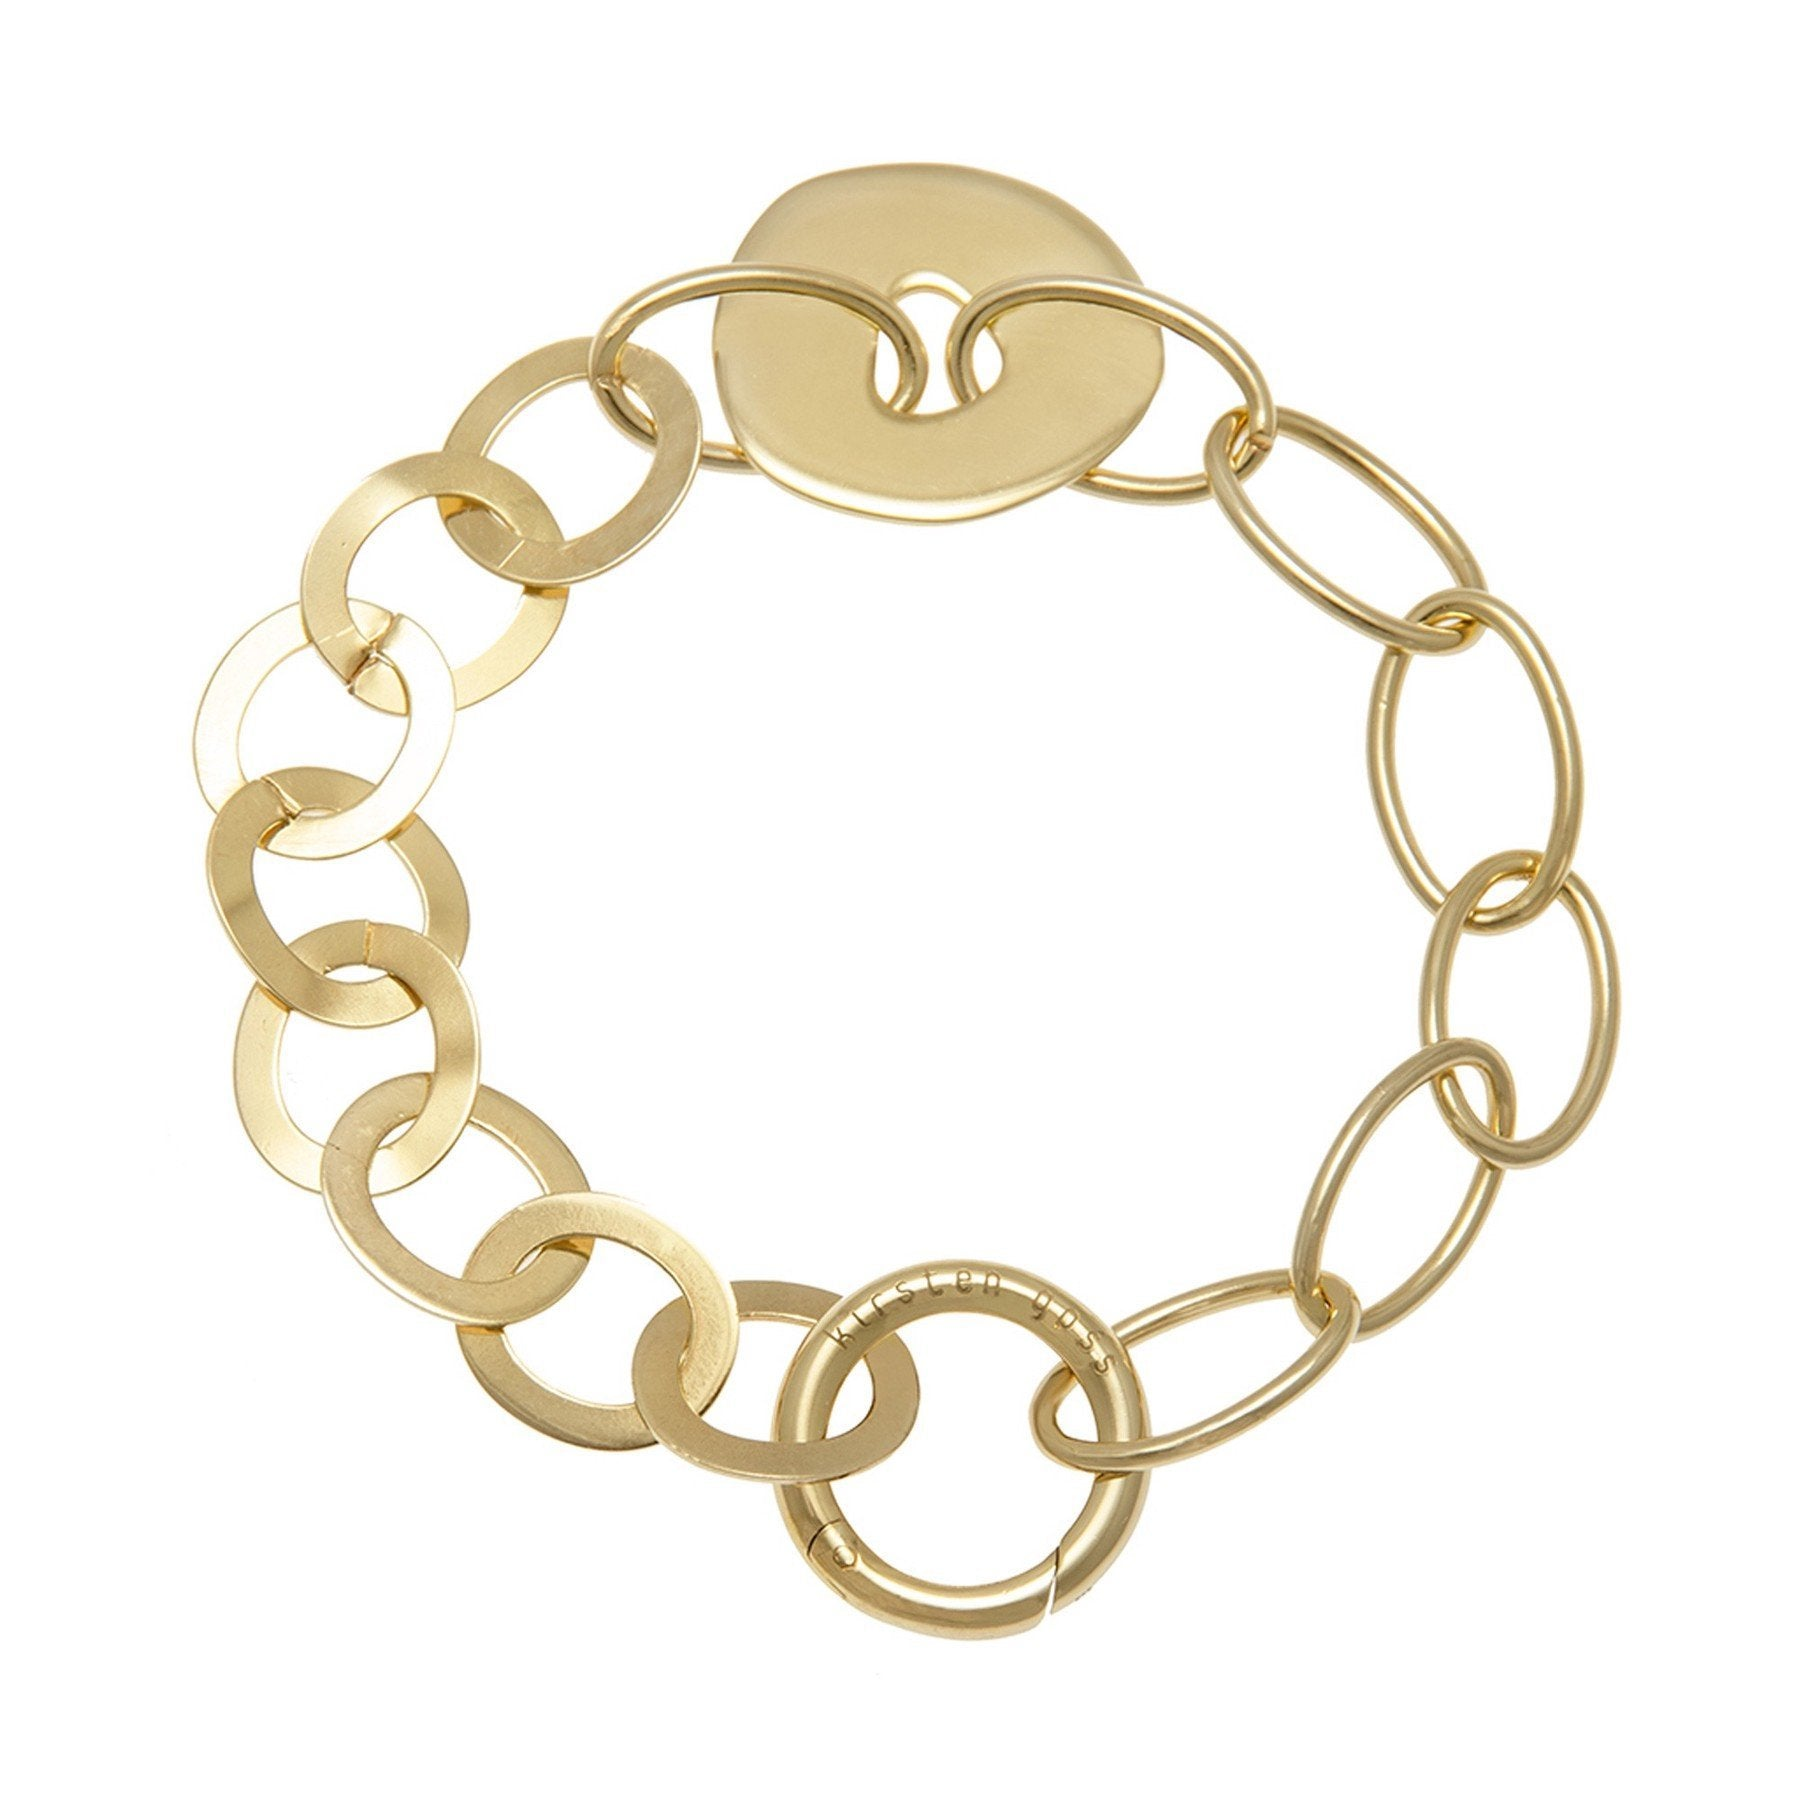 DONUT MIXUP19 LIFESAVER BRACELET JEWELRY BY KIRSTEN GOSS. Mixed link lifesaver bracelet with large donut shape and signature clasp, for charms to be clipped on and off. A beautiful handmade piece in 18kt gold vermeil.